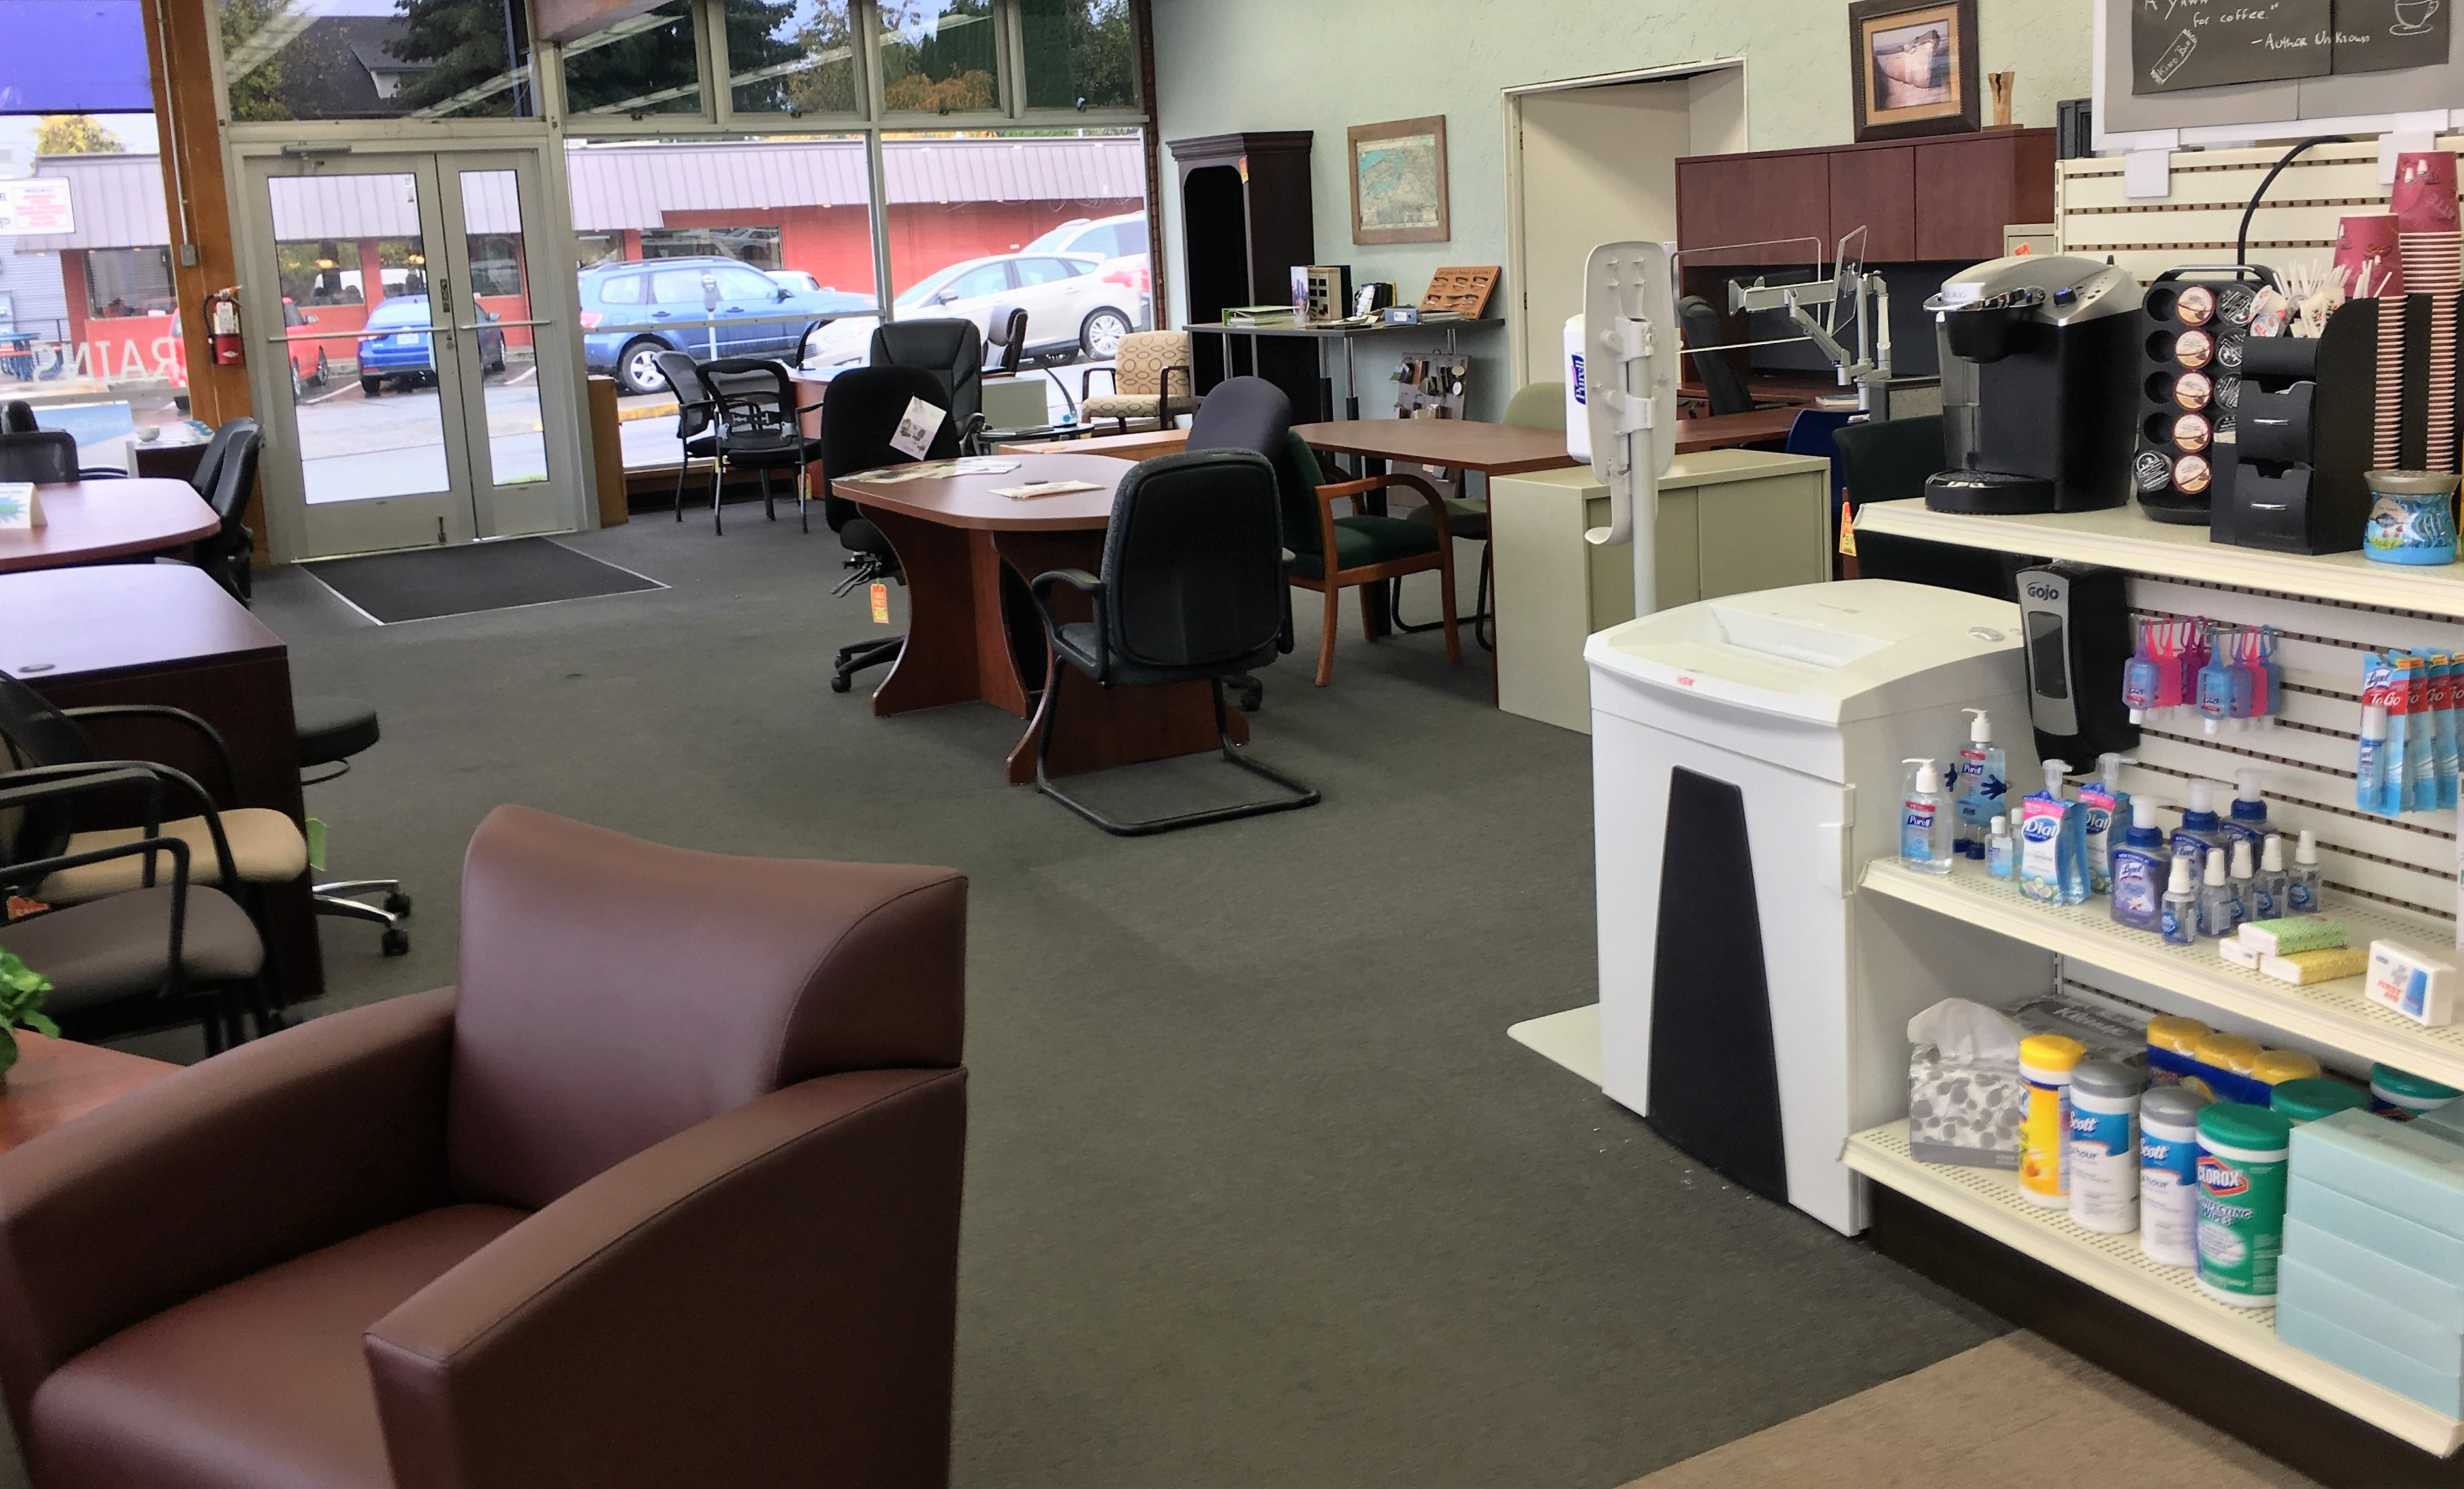 Crains also offers office furniture with a small showroom